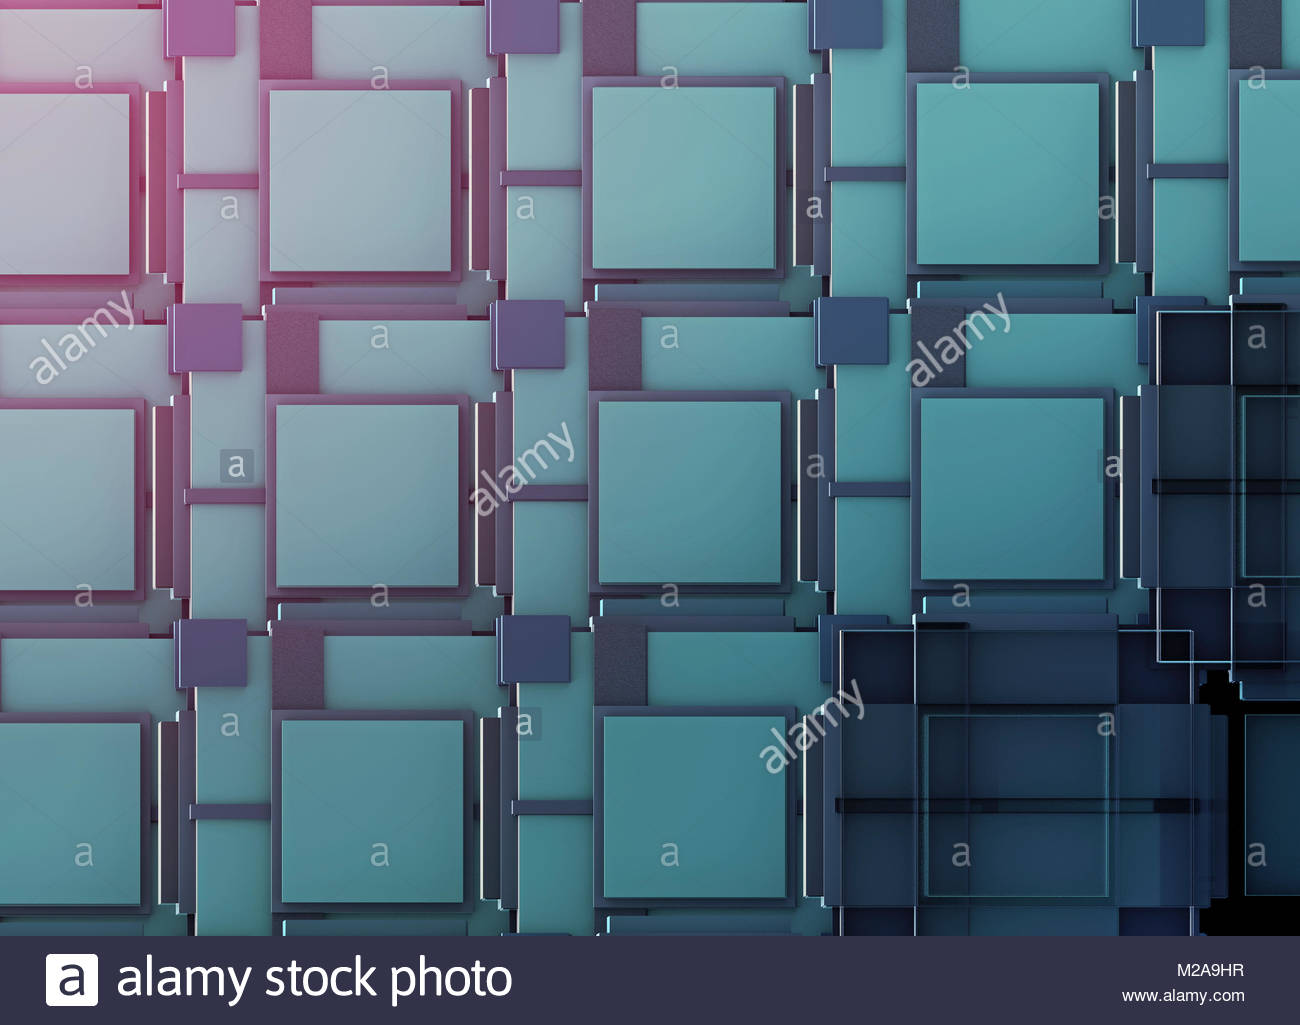 Full frame three dimensional blue repeat pattern - Stock Image